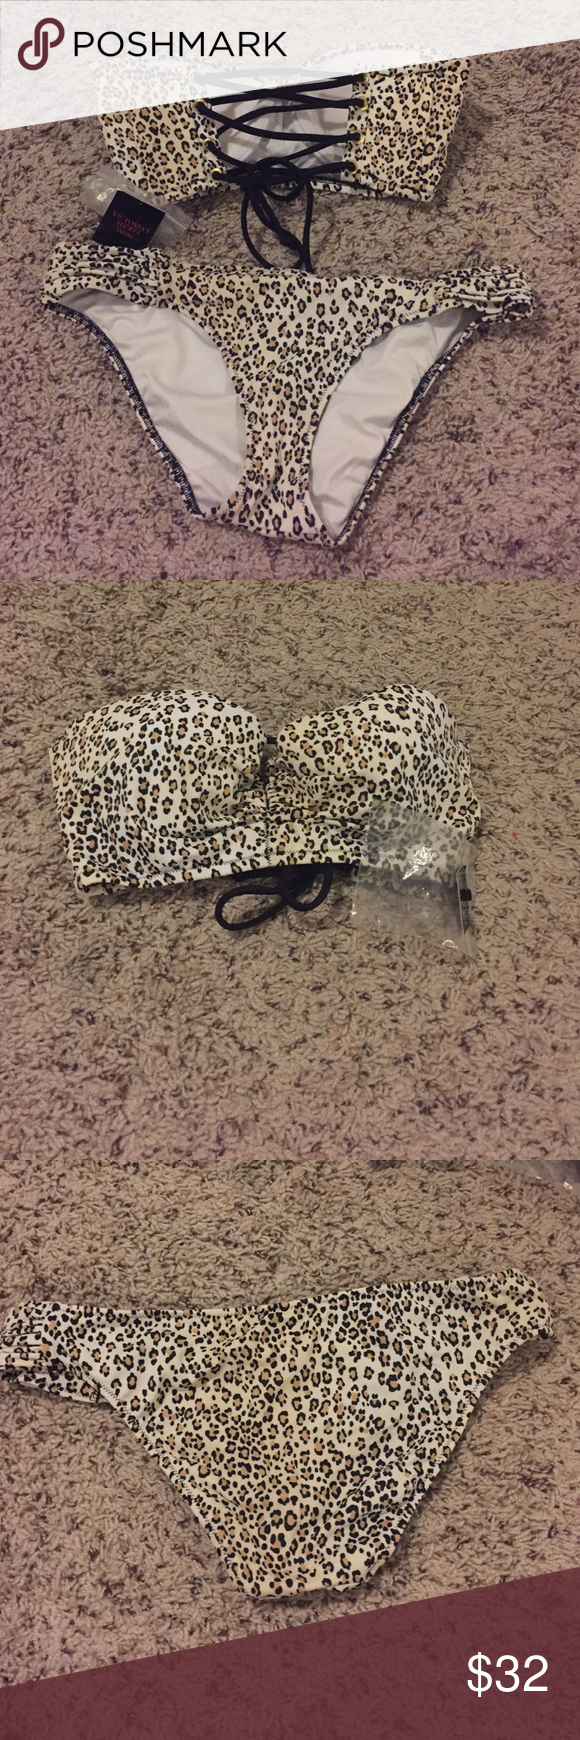 Victoria's Secret leopard lace up bikini Victoria's Secret leopard lace up bikini. Top size 32D, bottoms size small. Top is NWT, bottoms have only been worn once. Top is strapless and does not come with straps. Victoria's Secret Swim Bikinis